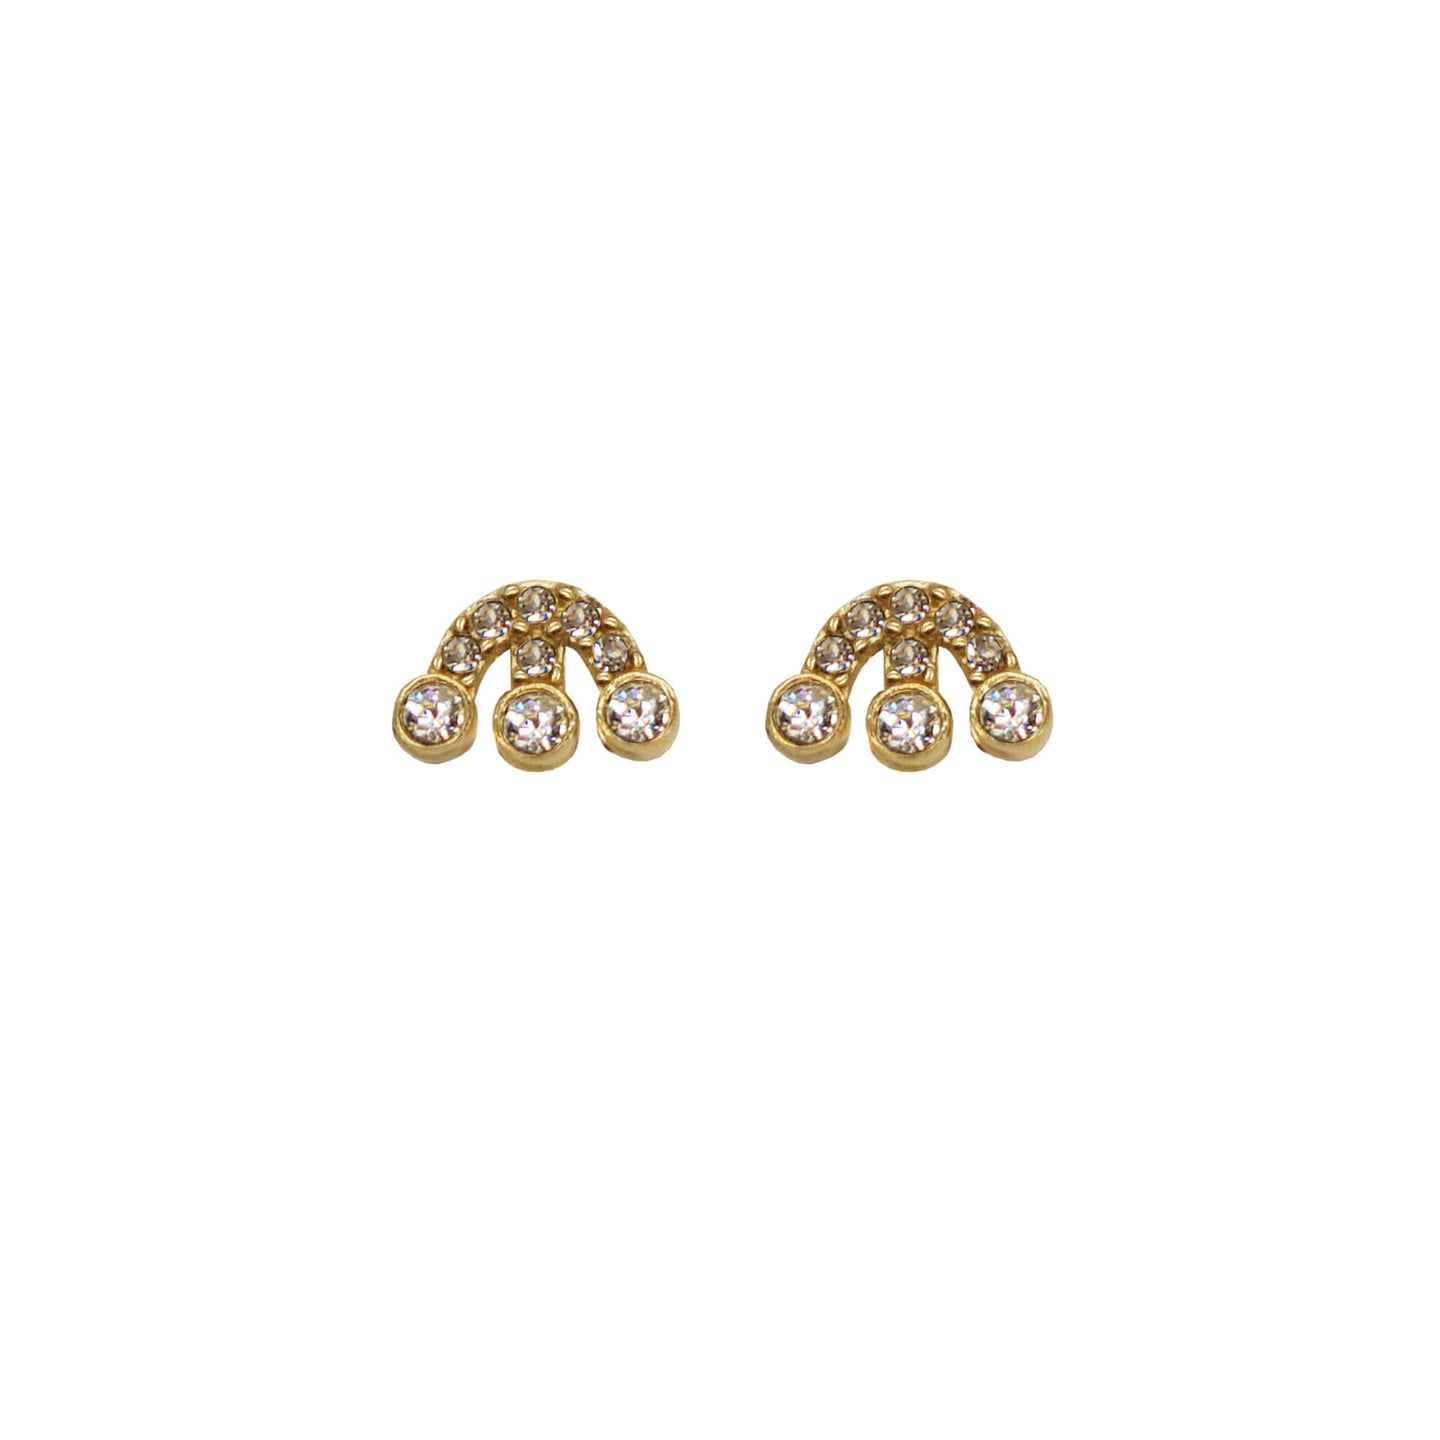 Pair of Pawnshop Gold Plated Sterling Silver Logo Stud earrings with CZ stones on a white background